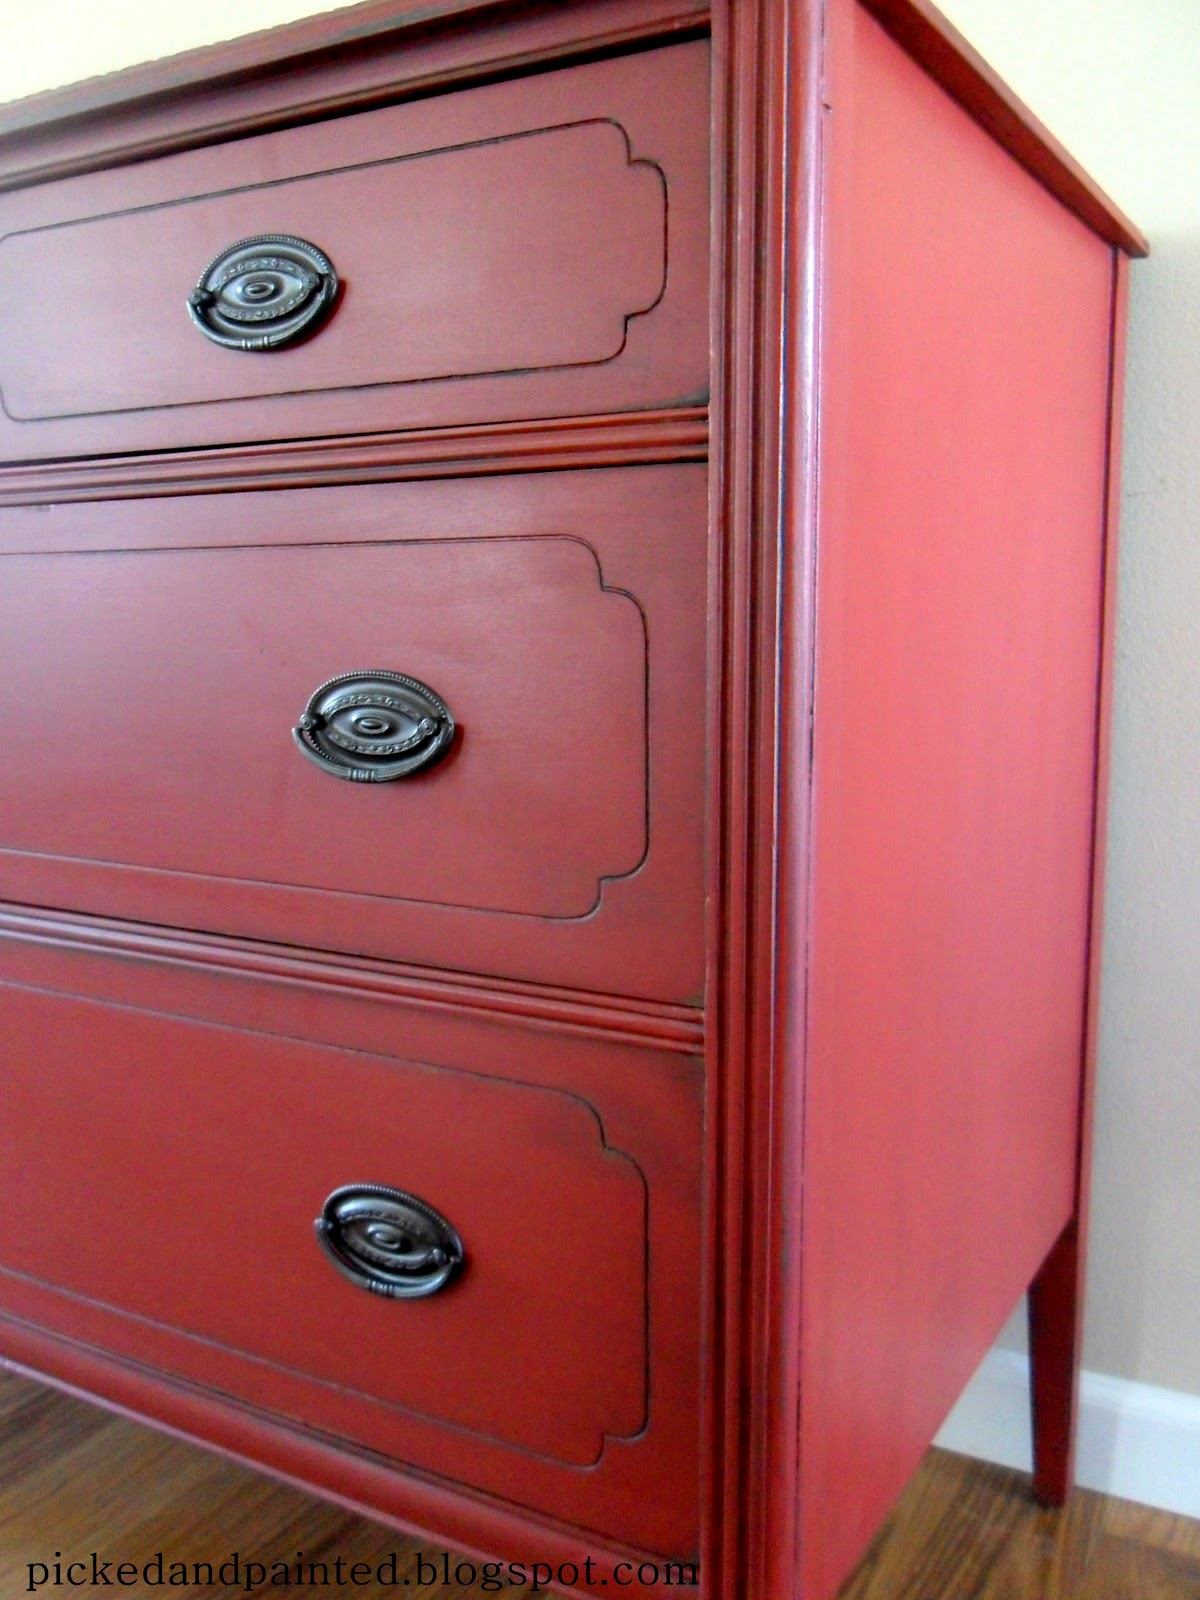 helen nichole designs custom red buffet birthday gift. Black Bedroom Furniture Sets. Home Design Ideas